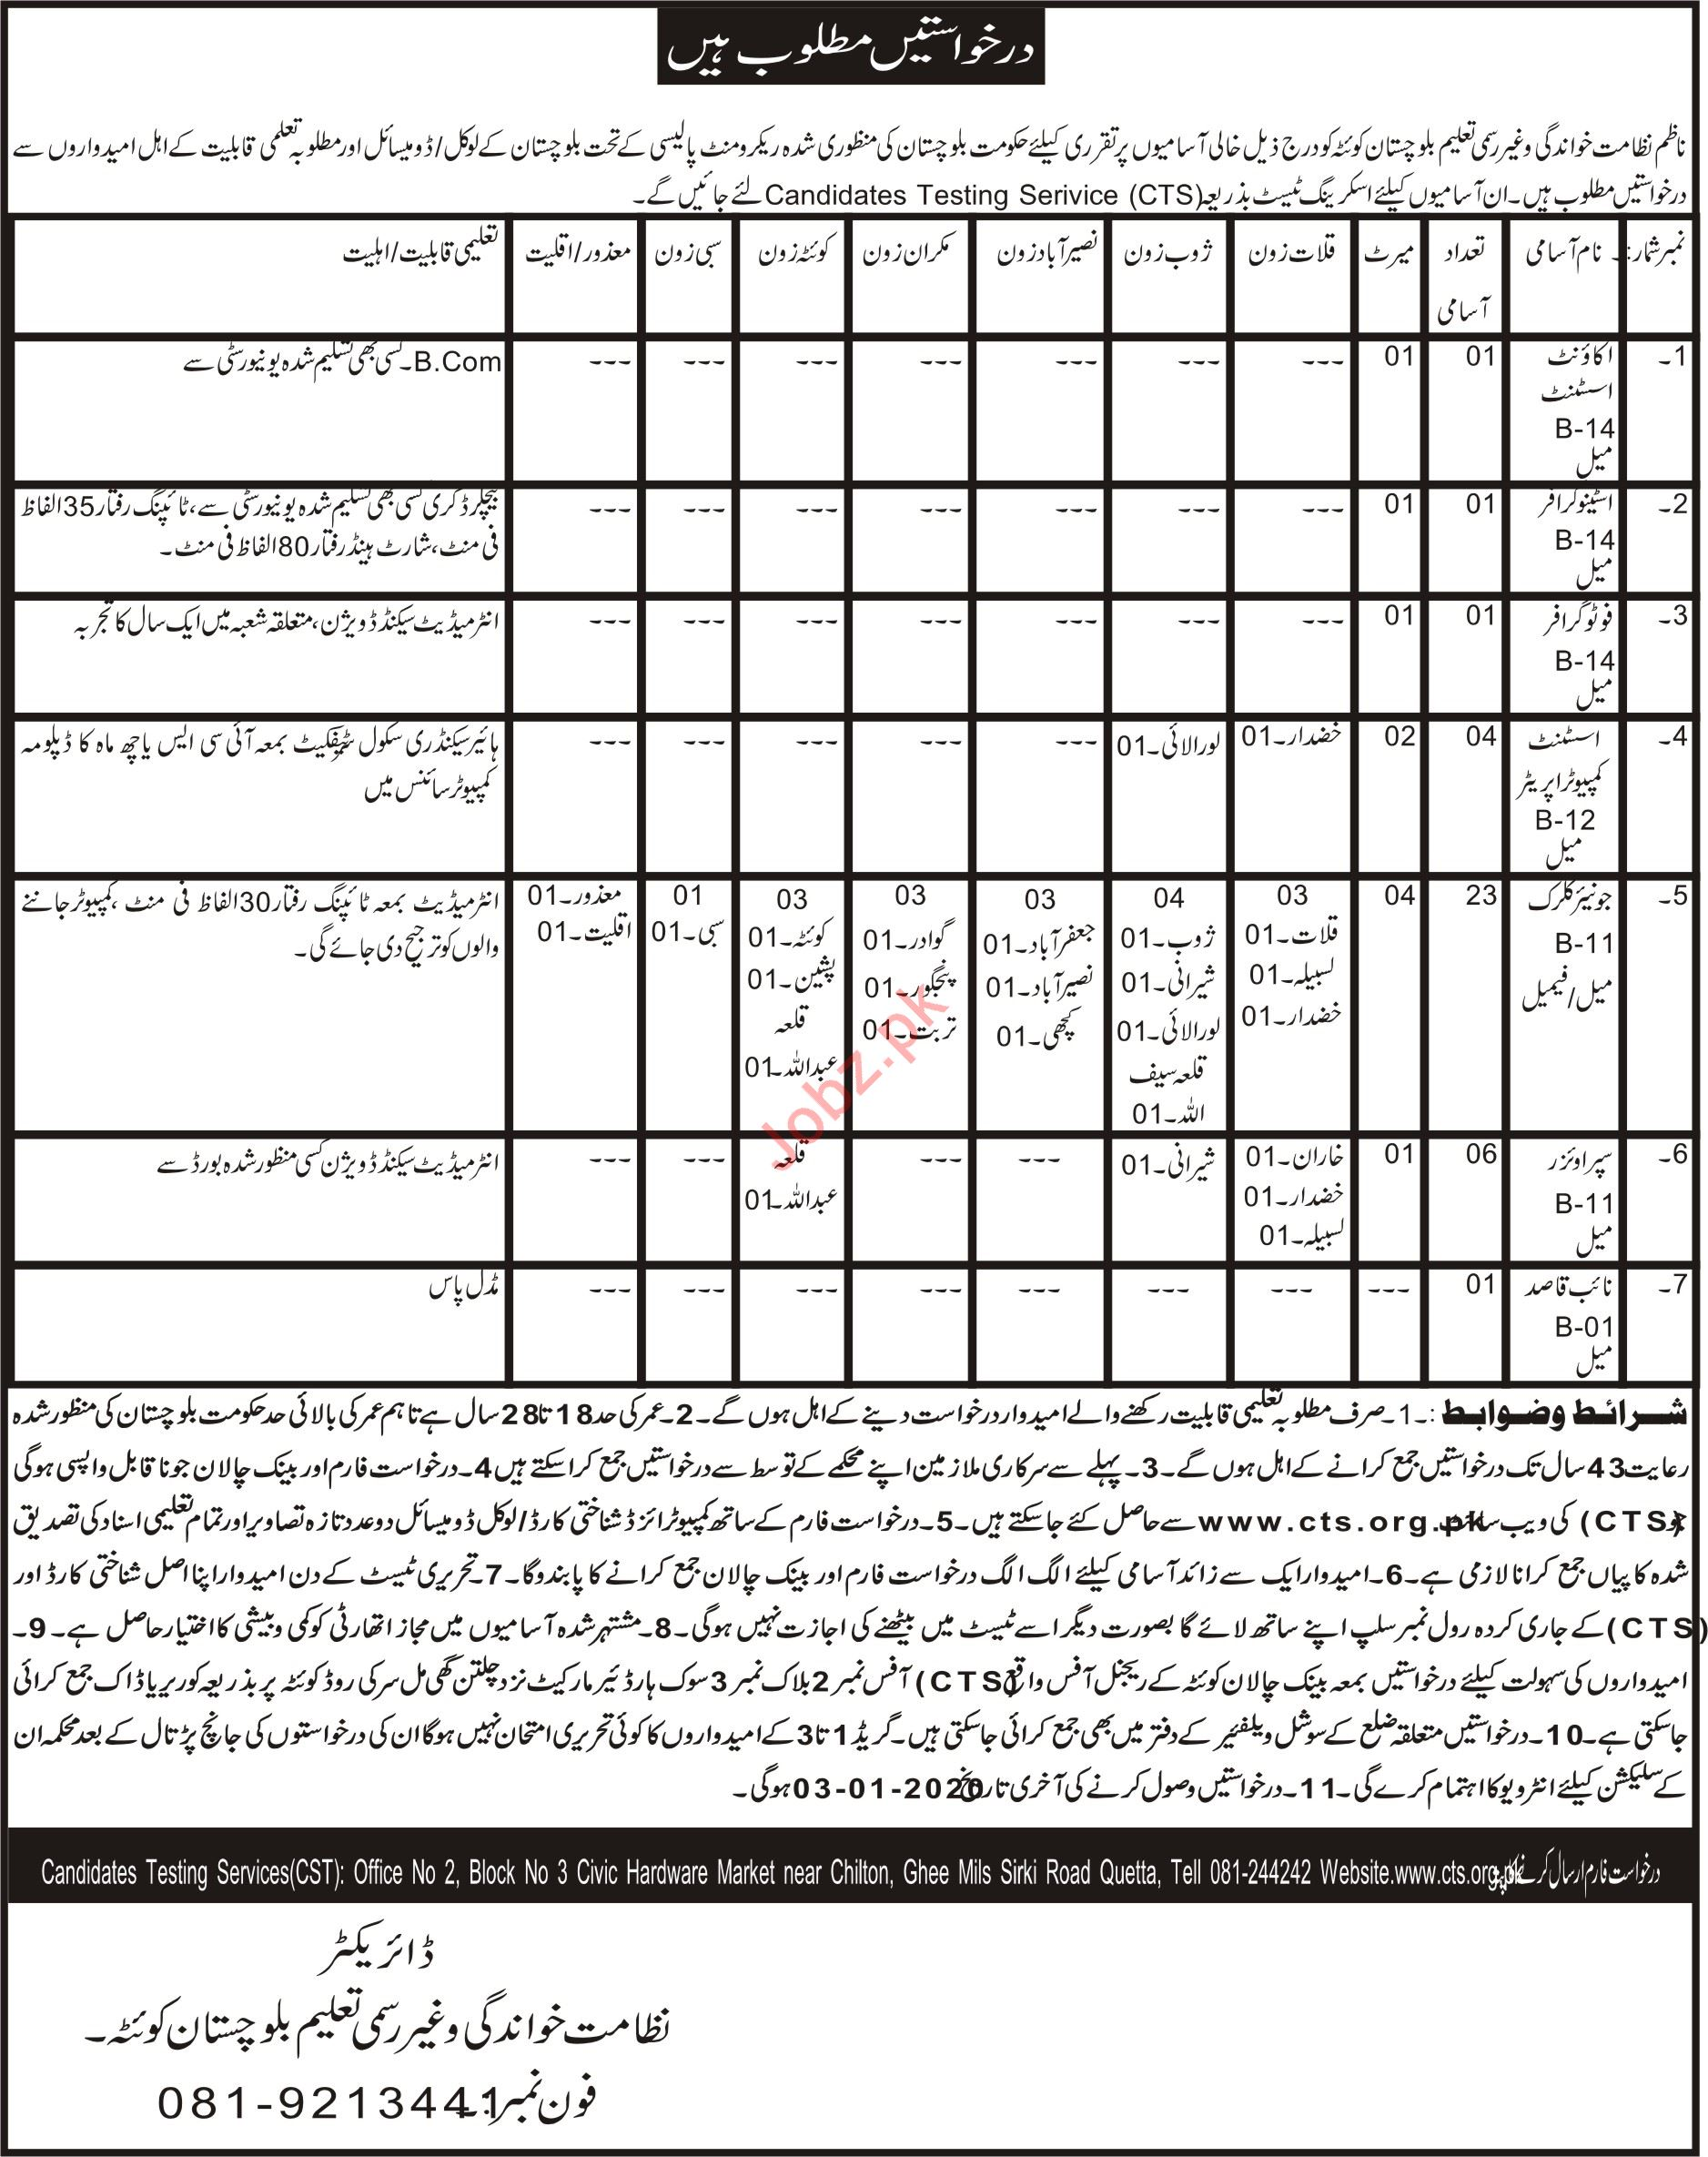 Literacy & Non-Formal Basic Education Department Jobs 2020